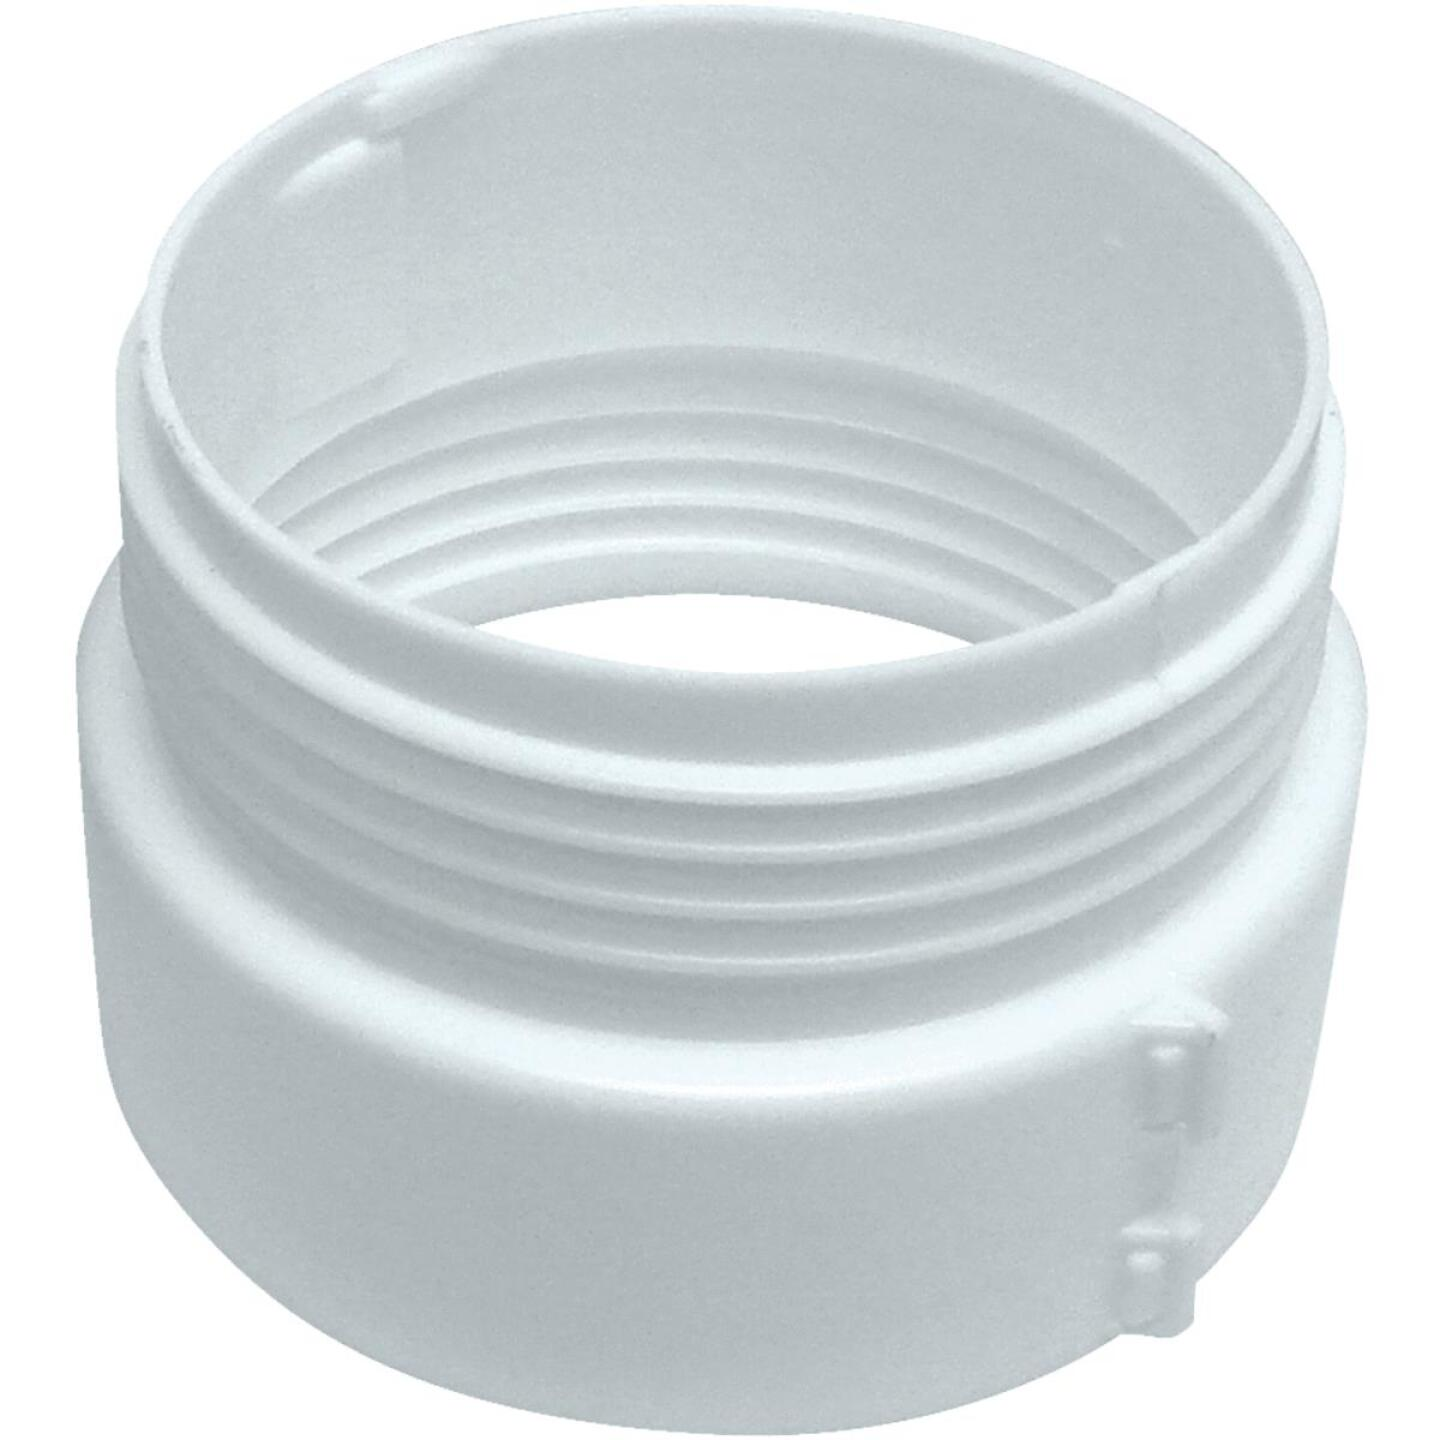 Lambro 4 In. Plastic Duct Connector Image 1